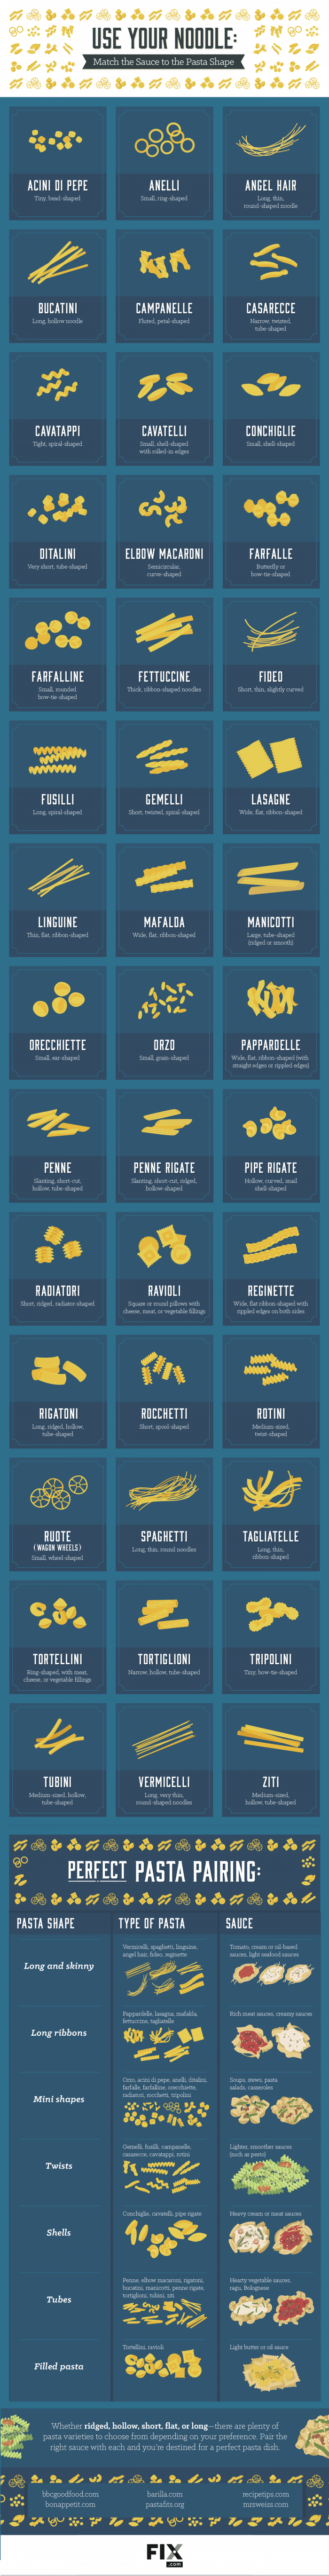 Instructions for perfect pasta pairings infographic